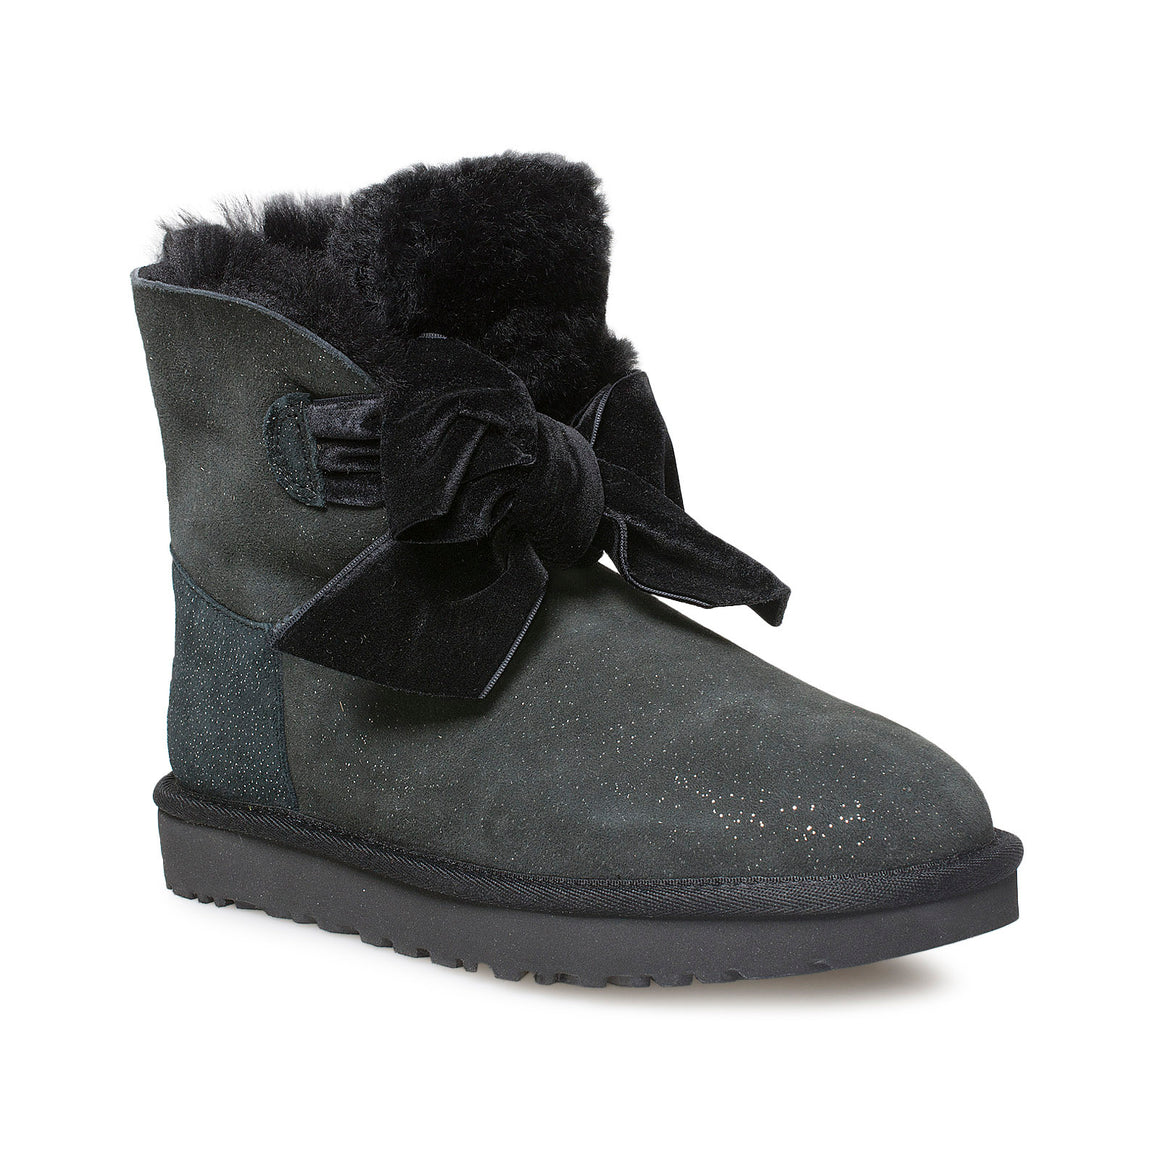 UGG Gita Twinkle Bow Mini Black Boots - Women's